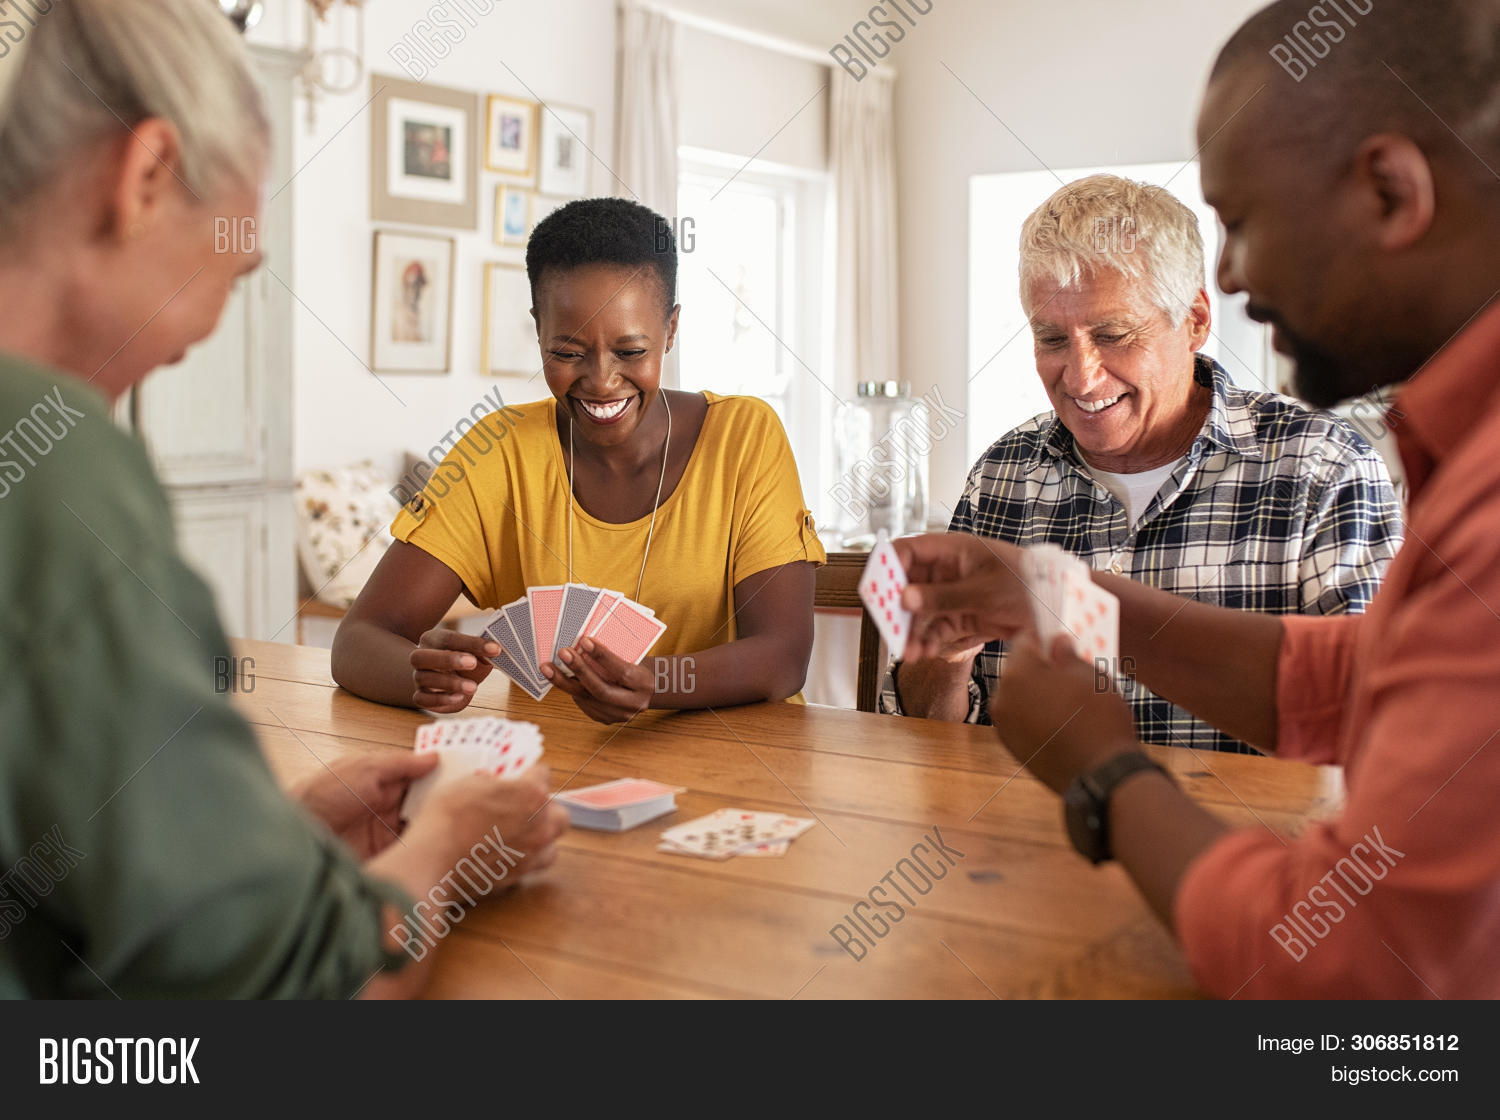 active,active seniors,african,aged,black,card,cheerful,couple,couples,elderly,enjoy,entertainment,friend,friends,friends playing cards,friendship,fun,game,glad,group,happy,home,indoors,leisure,man,mature,mid adult man,mid adult woman,multi ethnic group,multiethnic,old man,people,play,playing cards,playing together,retired,retirement,senior,senior man,senior woman,seniors,sitting,smile,social,strategy,table,talking,together,toothy smile,woman